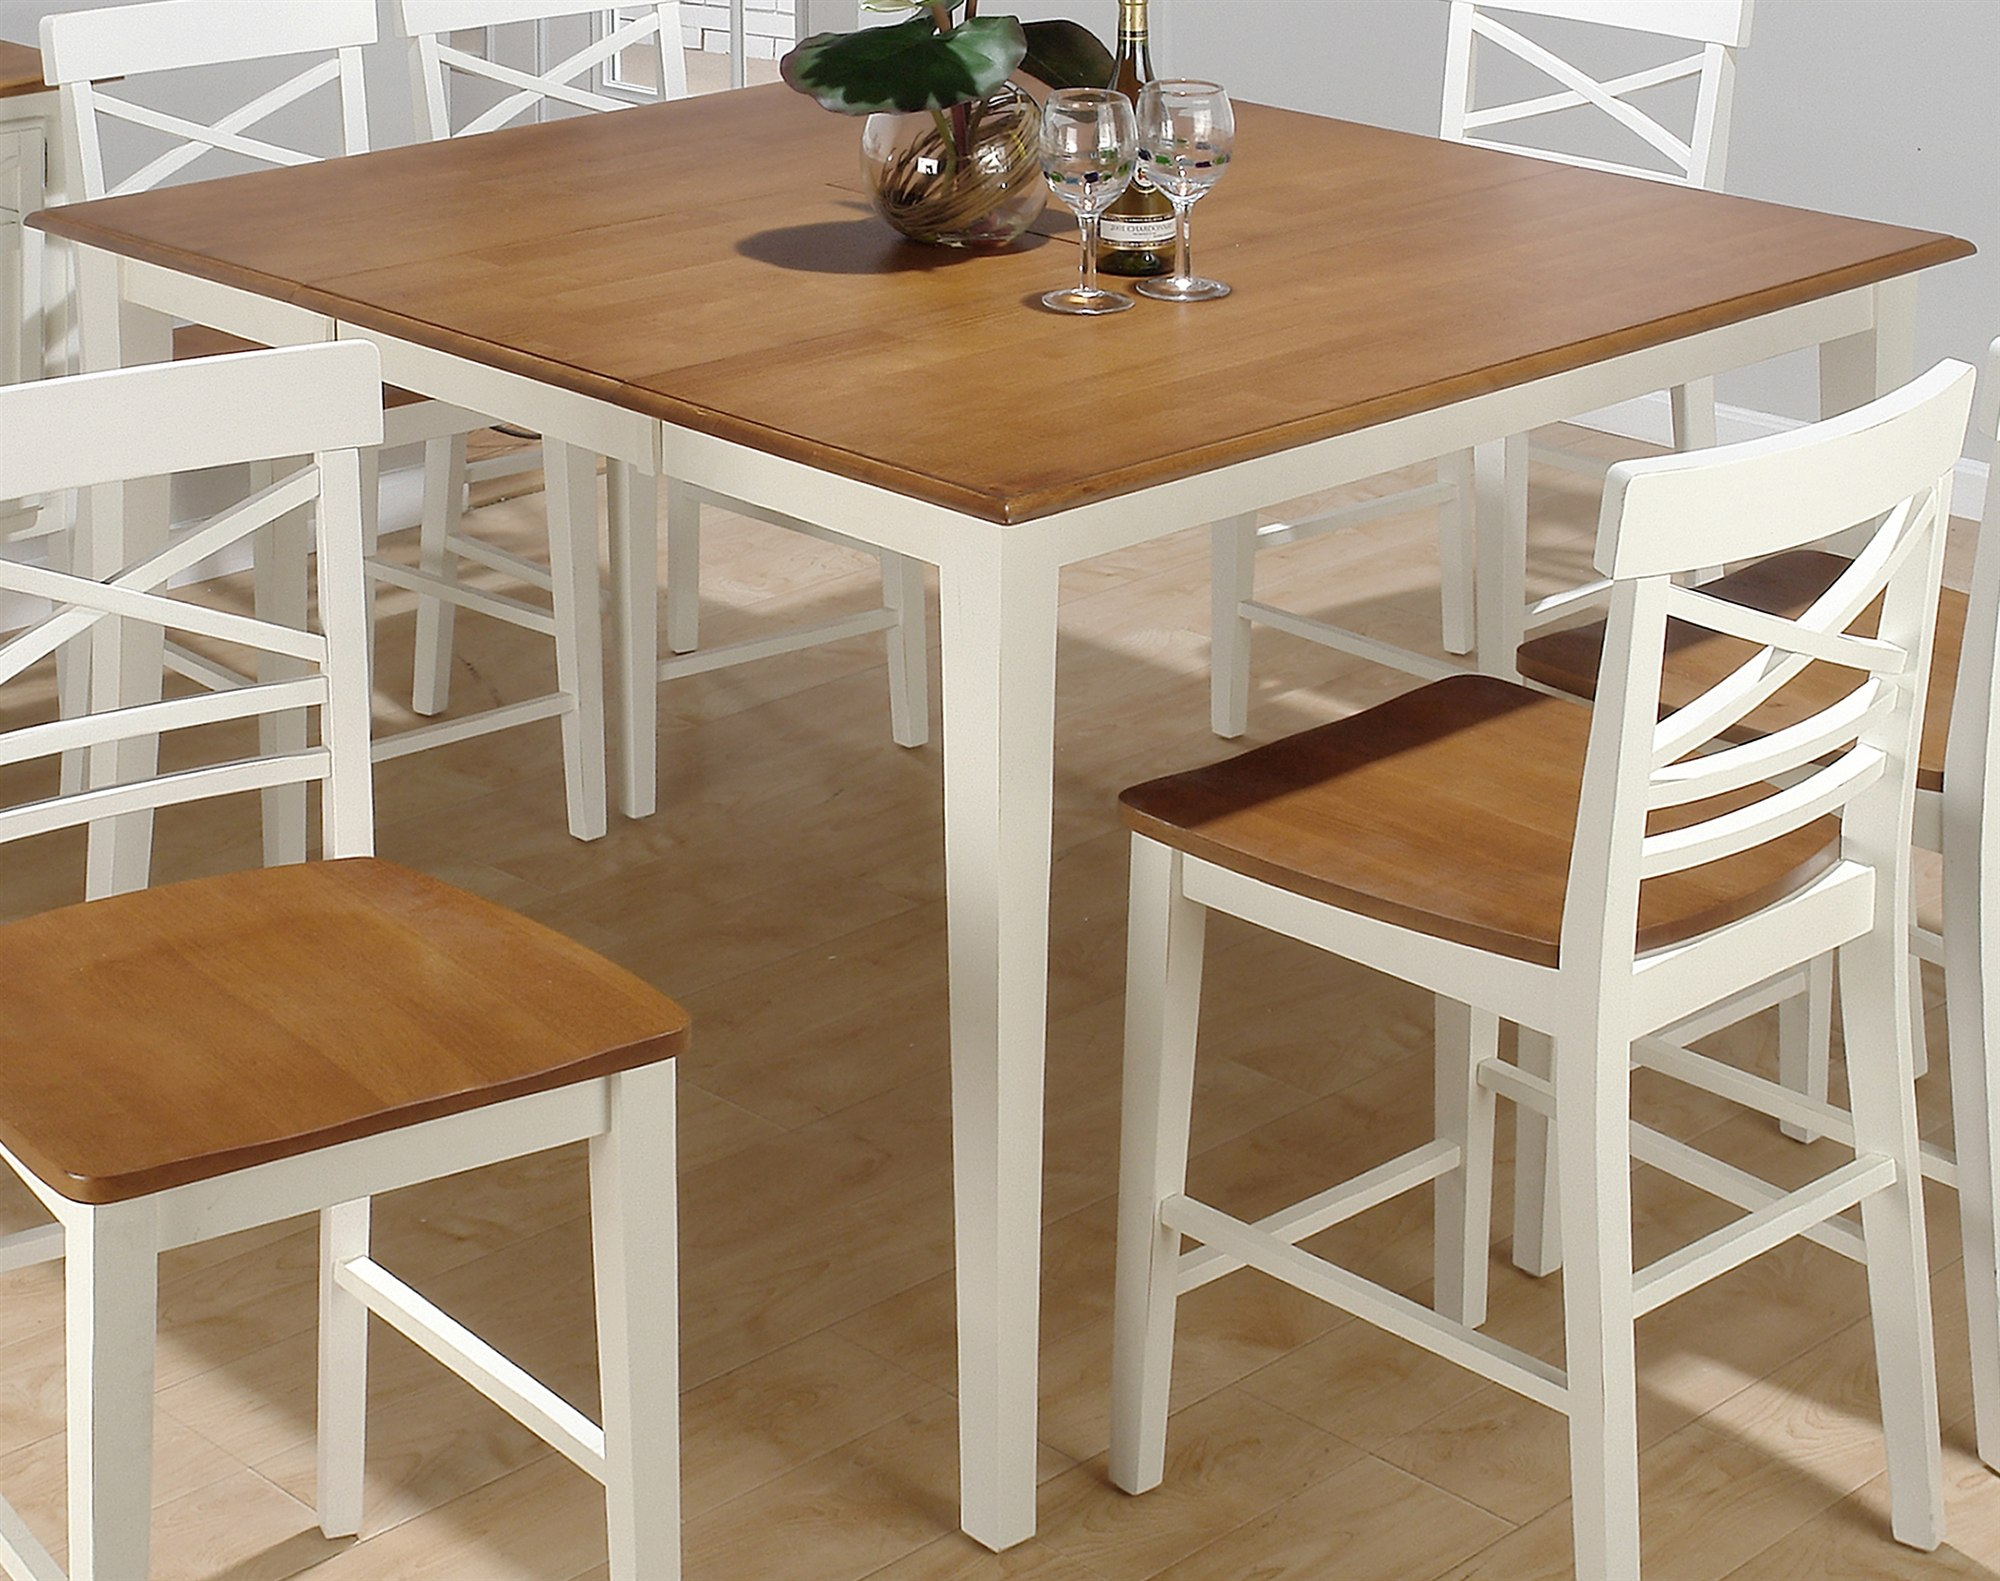 kitchen-chairs-ikea-photo-13